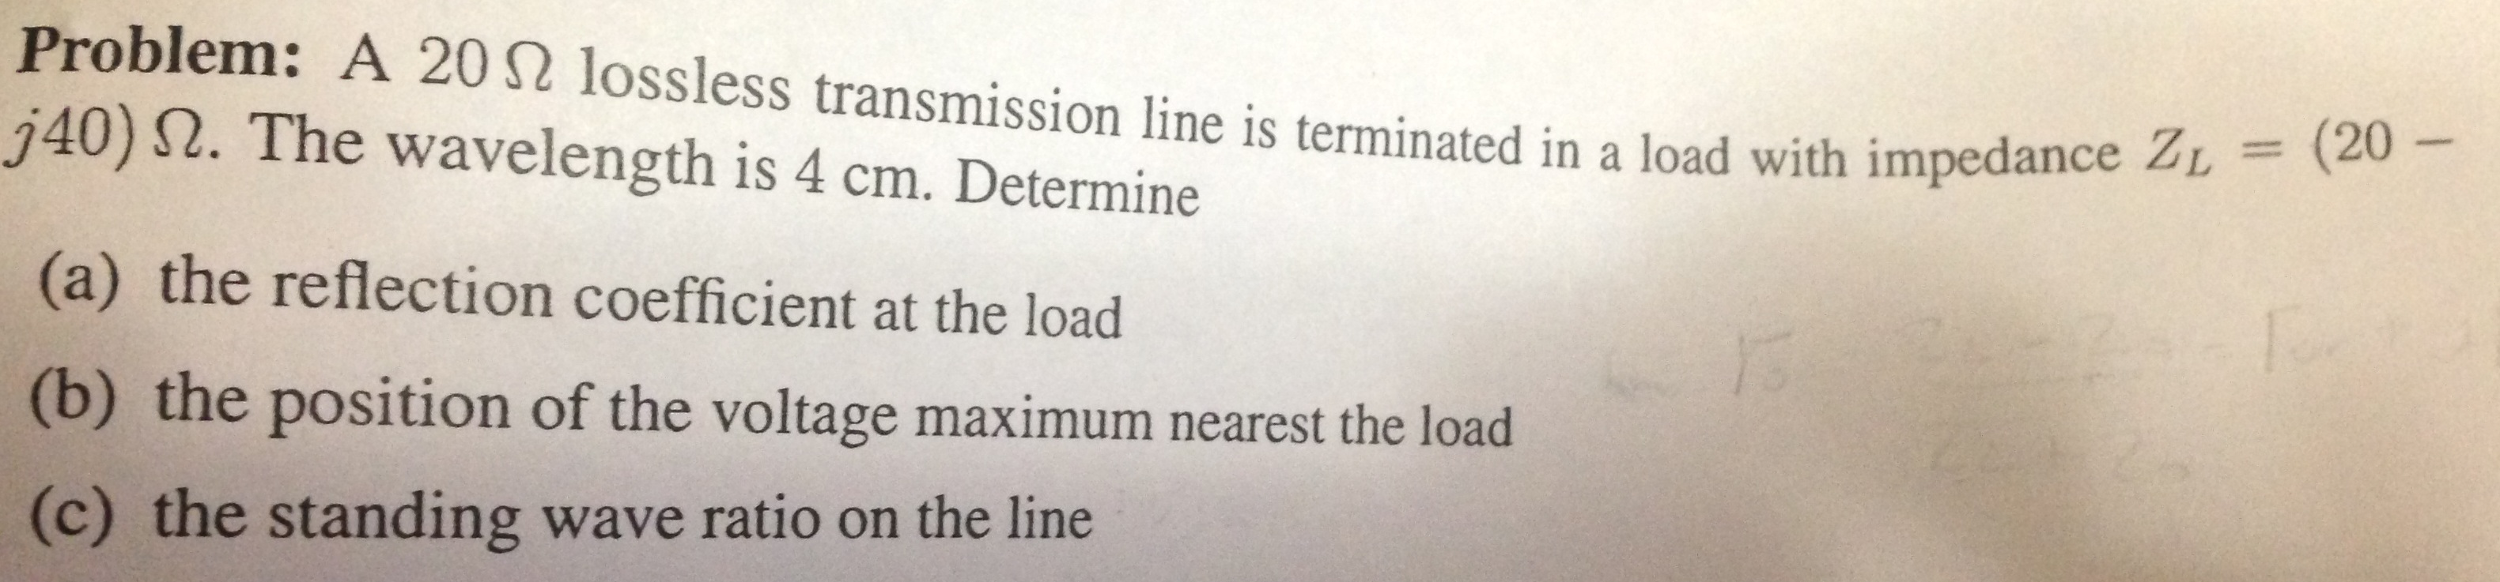 A 20 ohm lossless transmission line is terminated